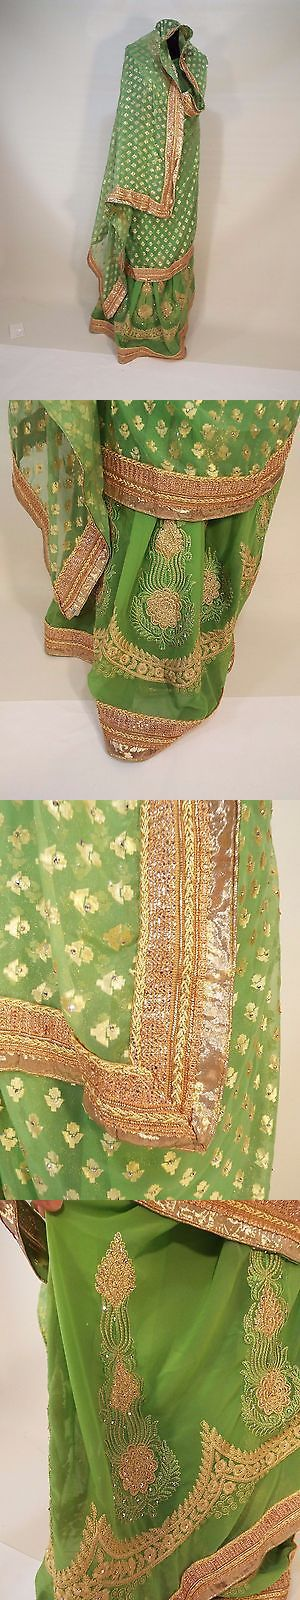 Other Ind-Pak Clothes and Accs 155251: Indian Gold Green Sari Wedding Dress Bollywood Lehenga Choli Wedding Bridal Free -> BUY IT NOW ONLY: $42 on eBay!